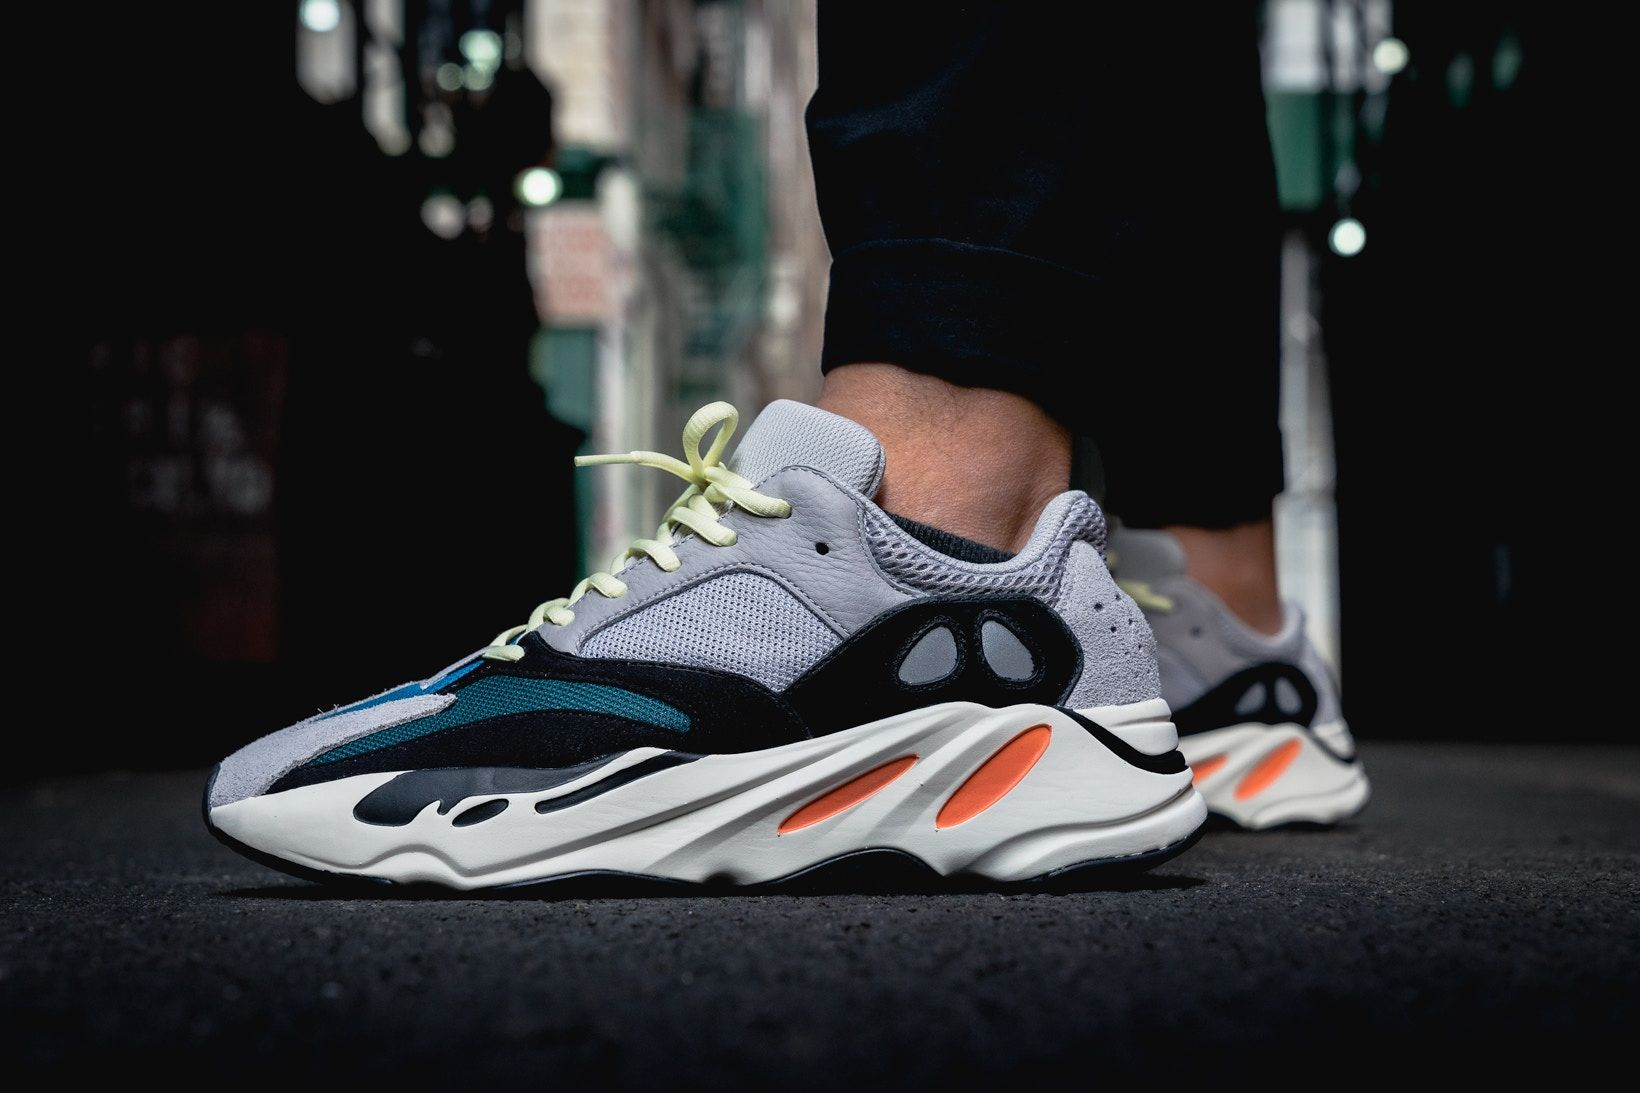 f6b4bf810fb6e adidas YEEZY BOOST 700 On Feet Closer Look Wave Runner Kanye West Kim  Kardashian footwear